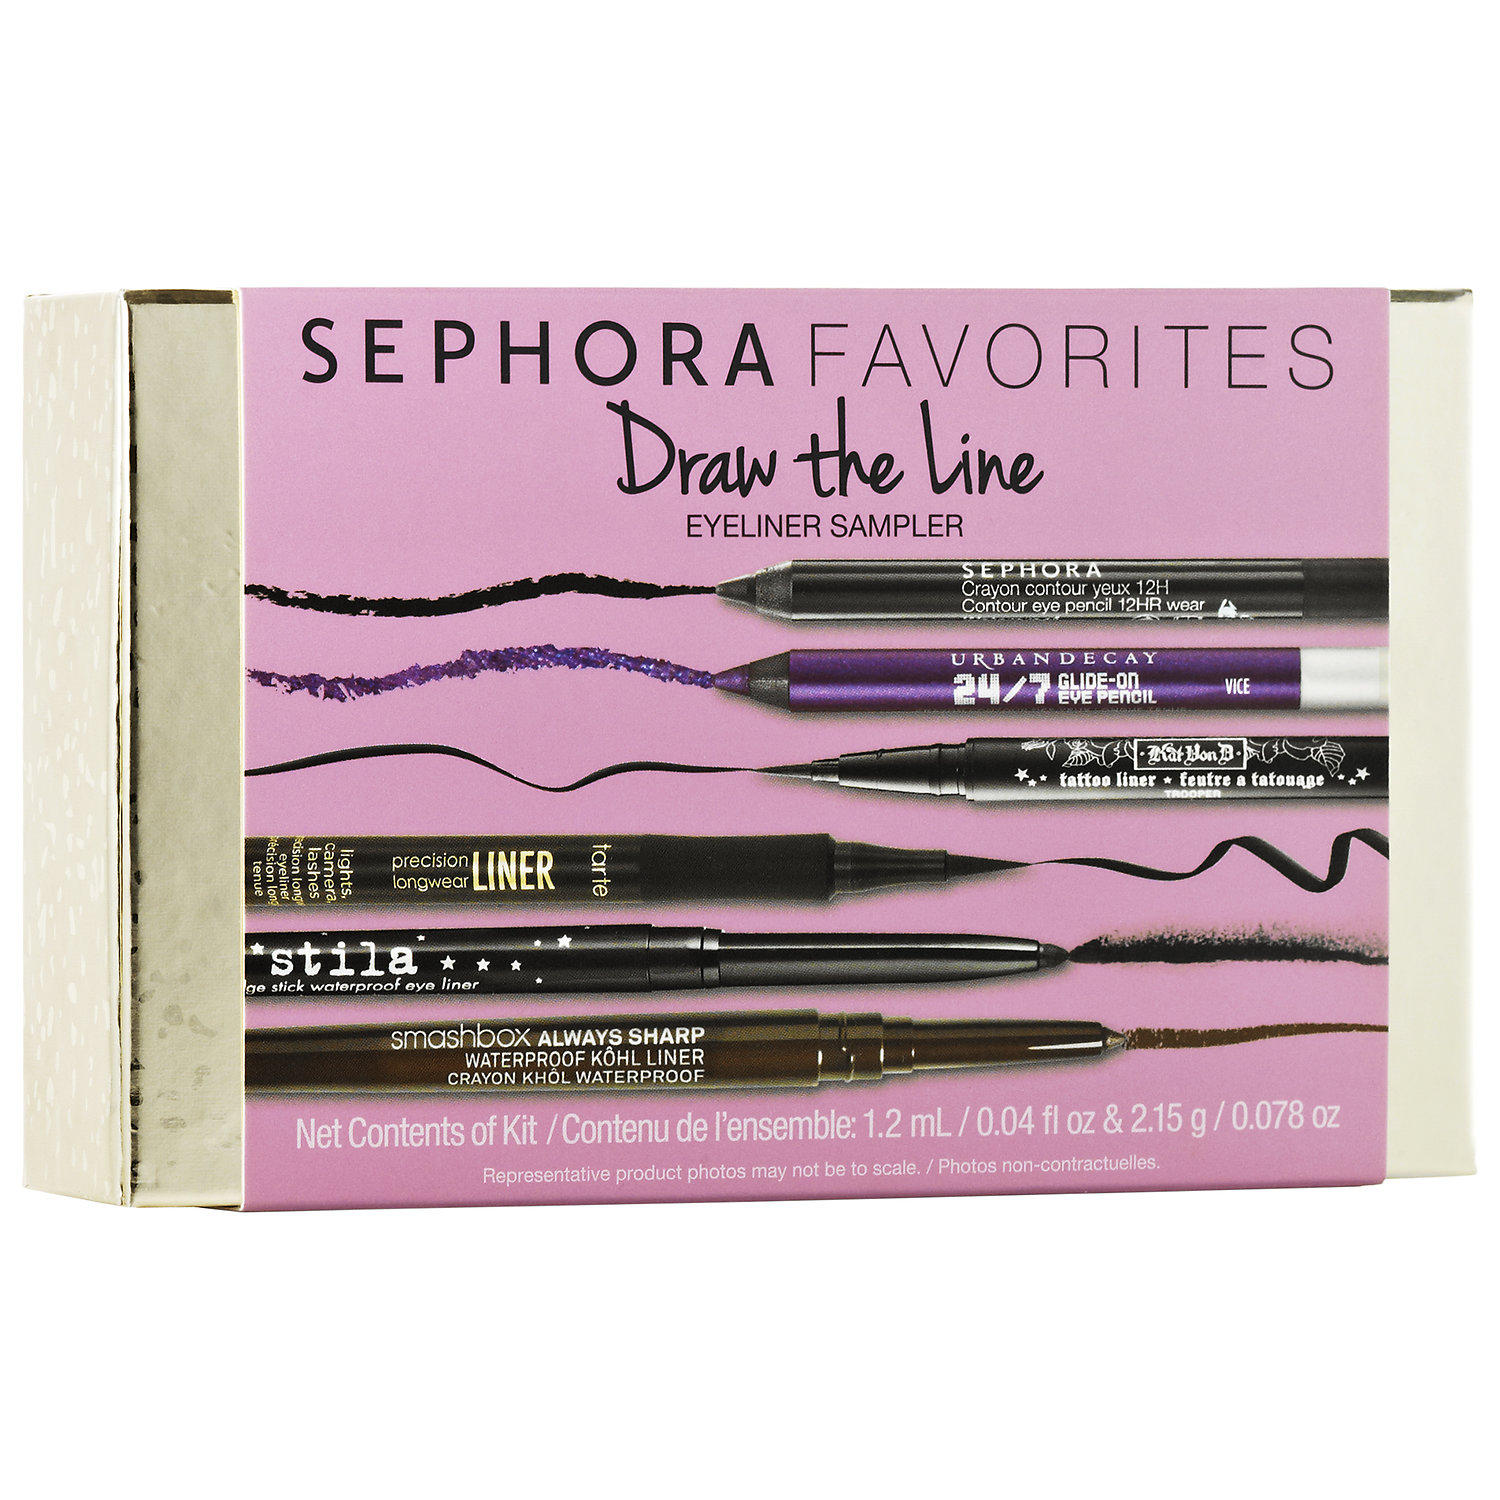 Sephora launched New Sephora Favorites Draw The Line